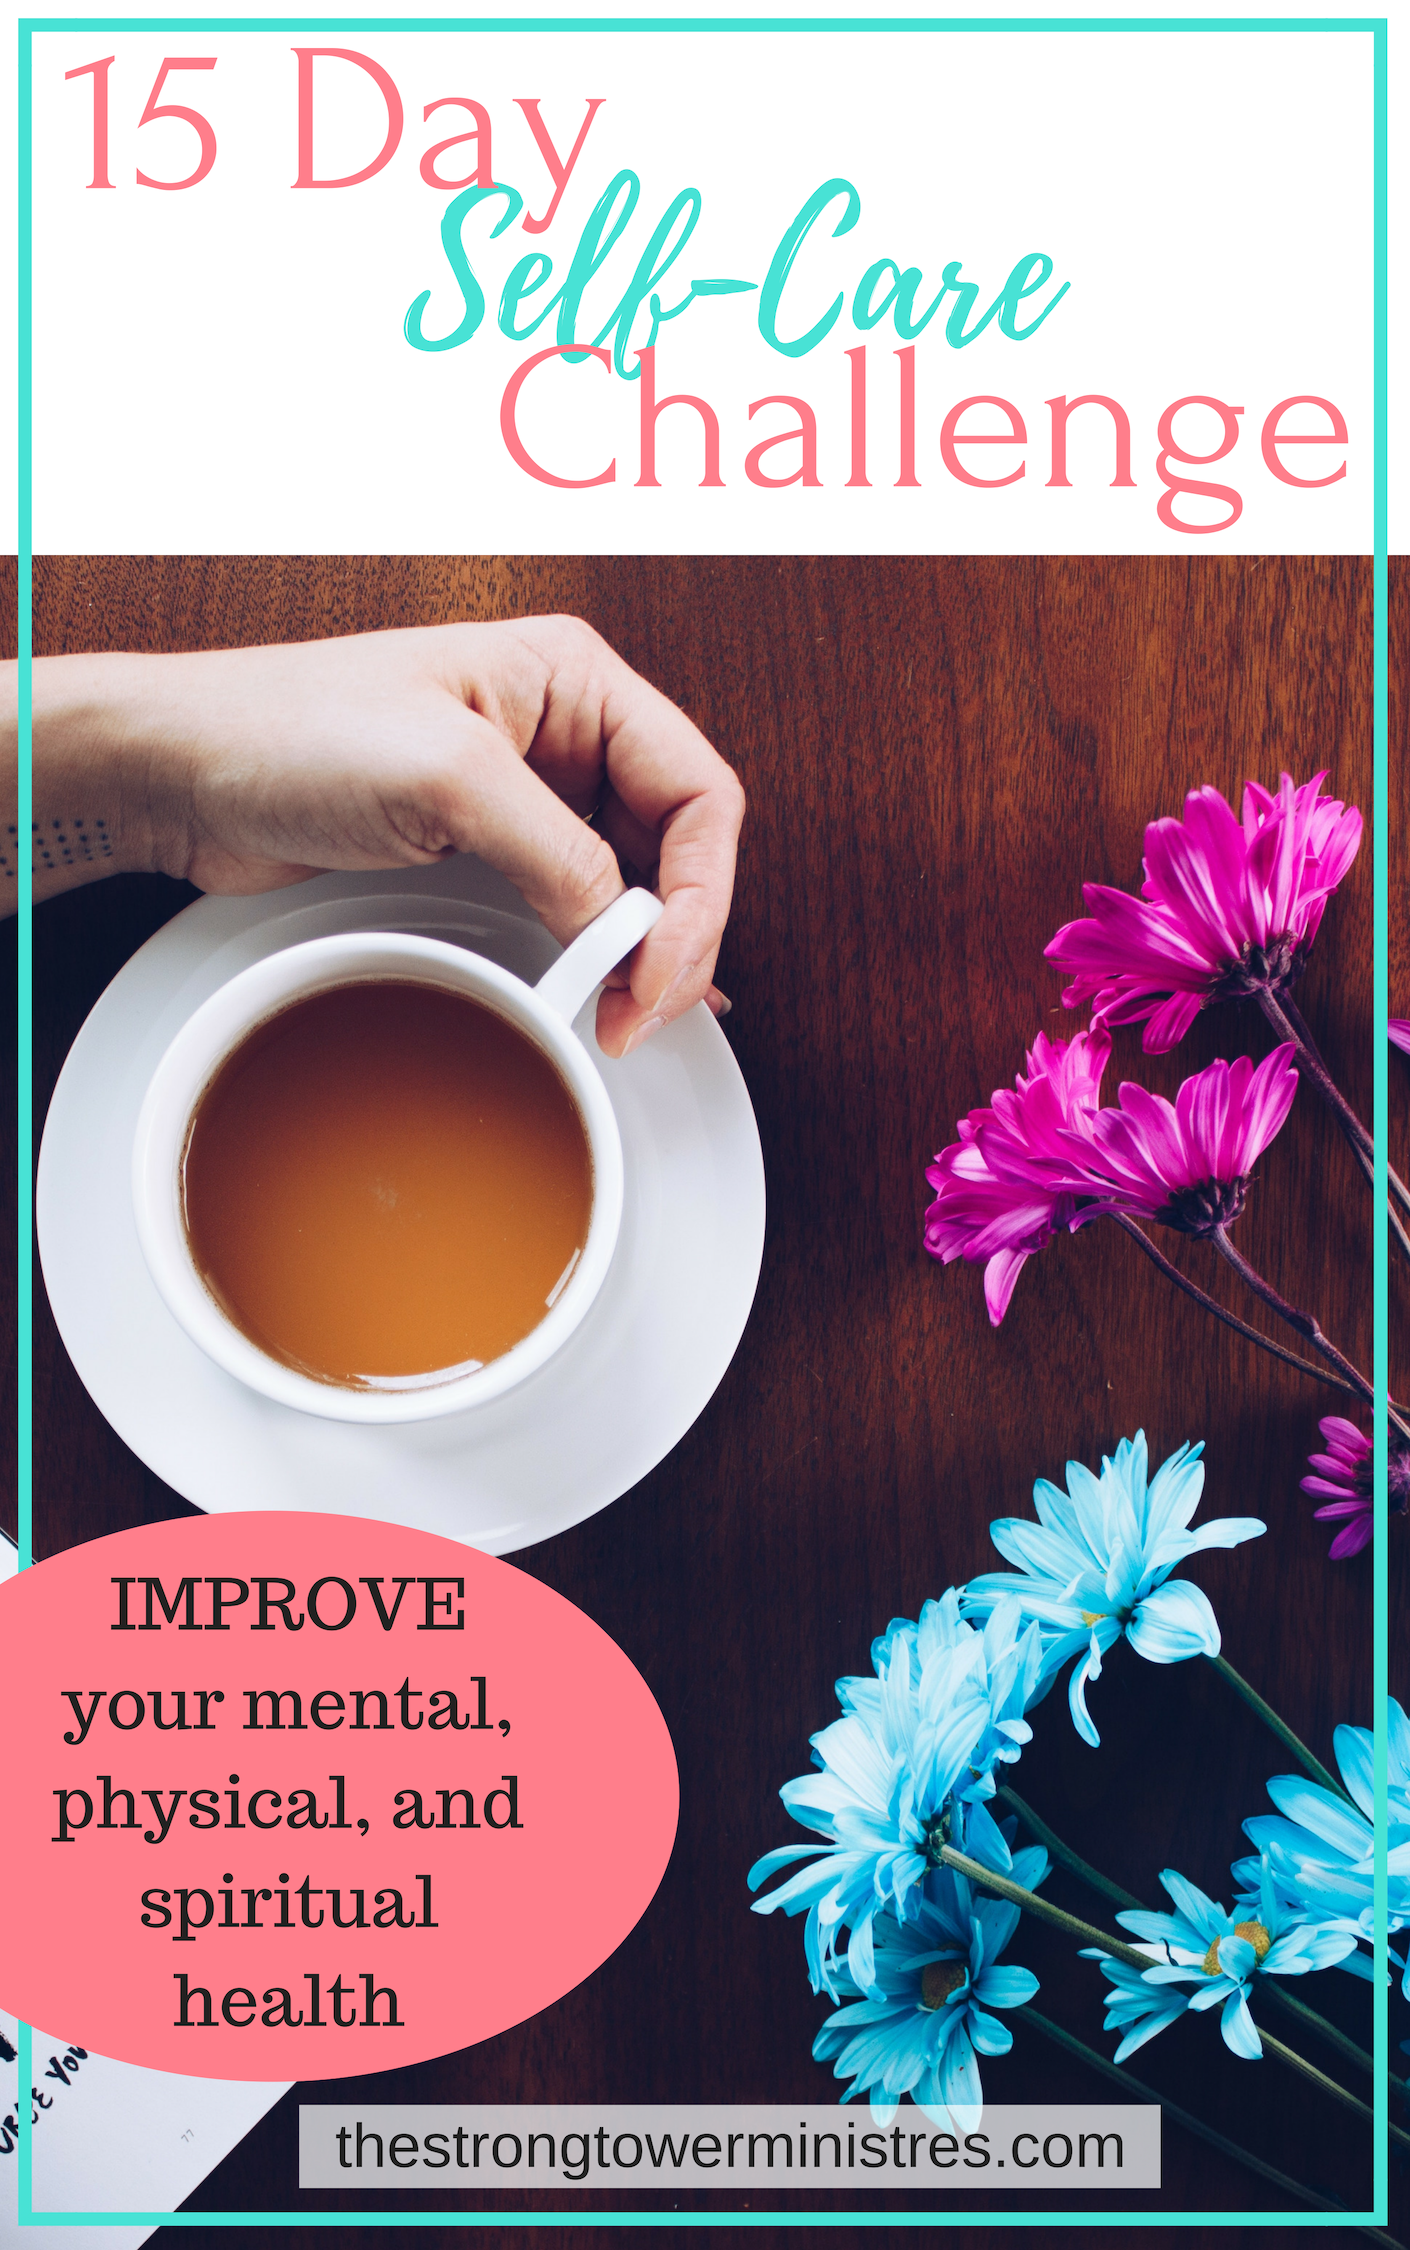 15 Day Self Care Challenge